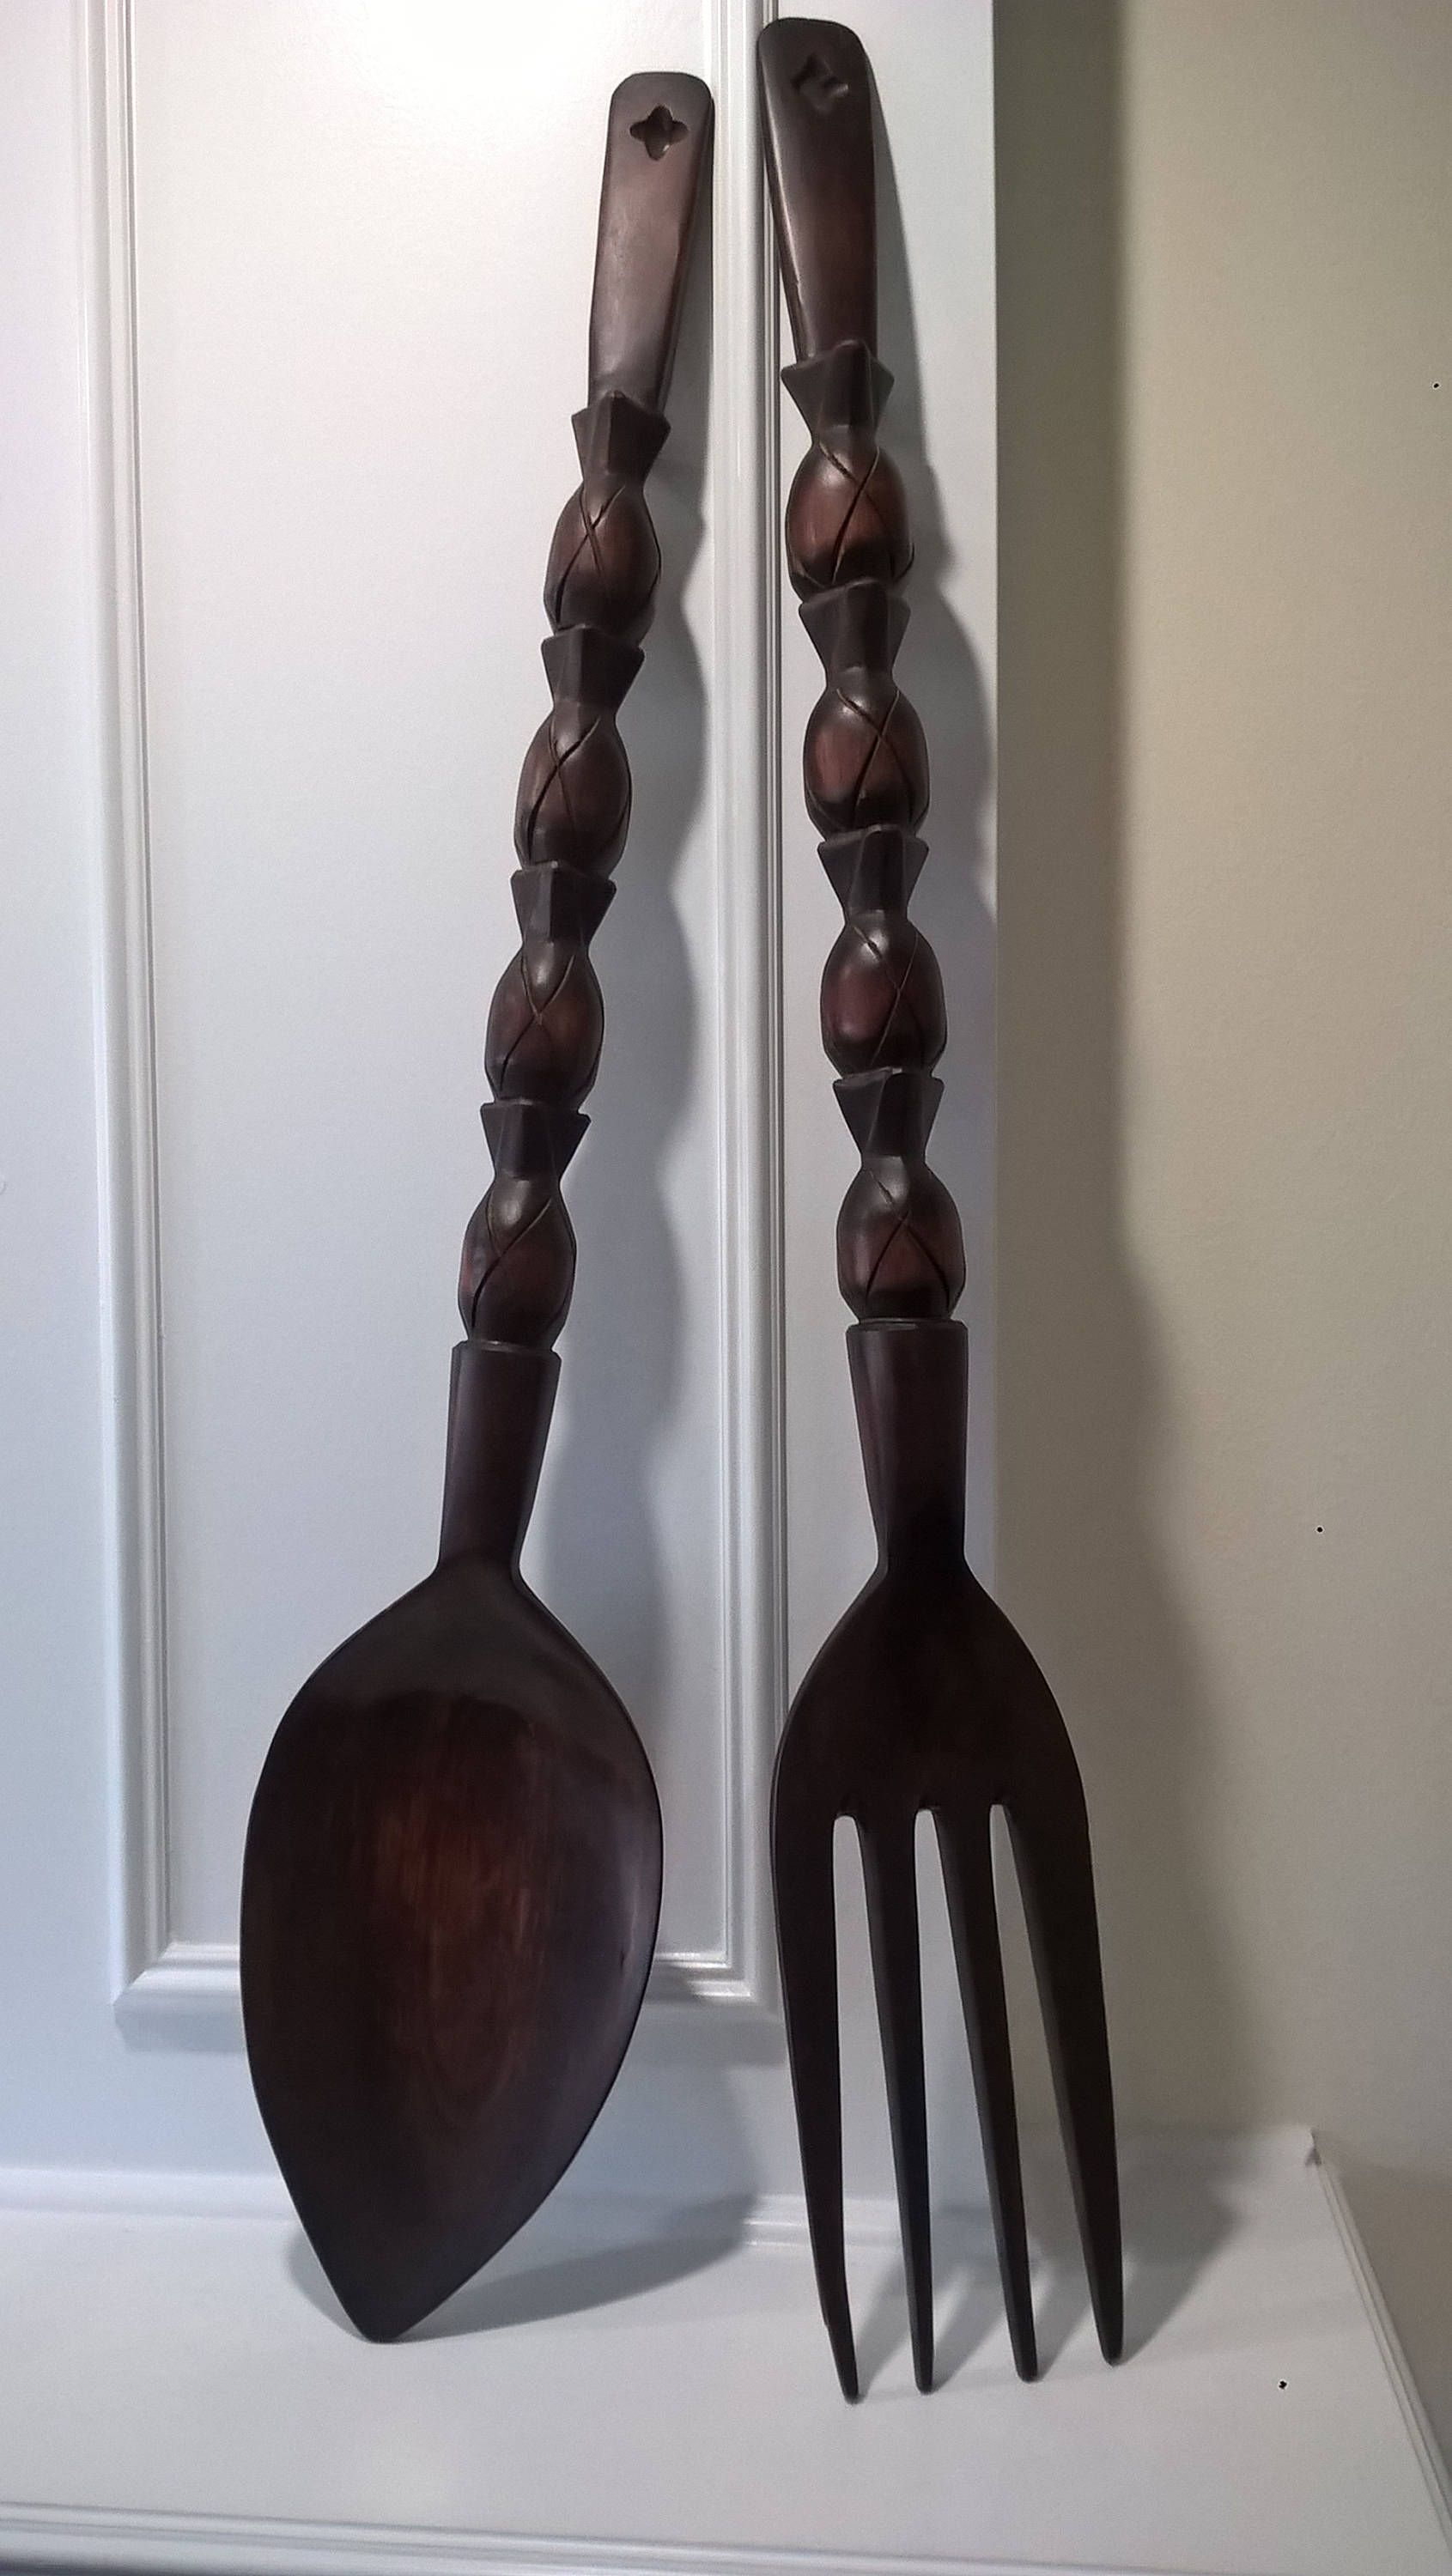 Vintage Extra Large Wood Fork And Spoon Wall Decor Retro 70 S Era Kitchen Wall Hanging Kitchen Wall Hangings Wooden Fork Forks And Spoons